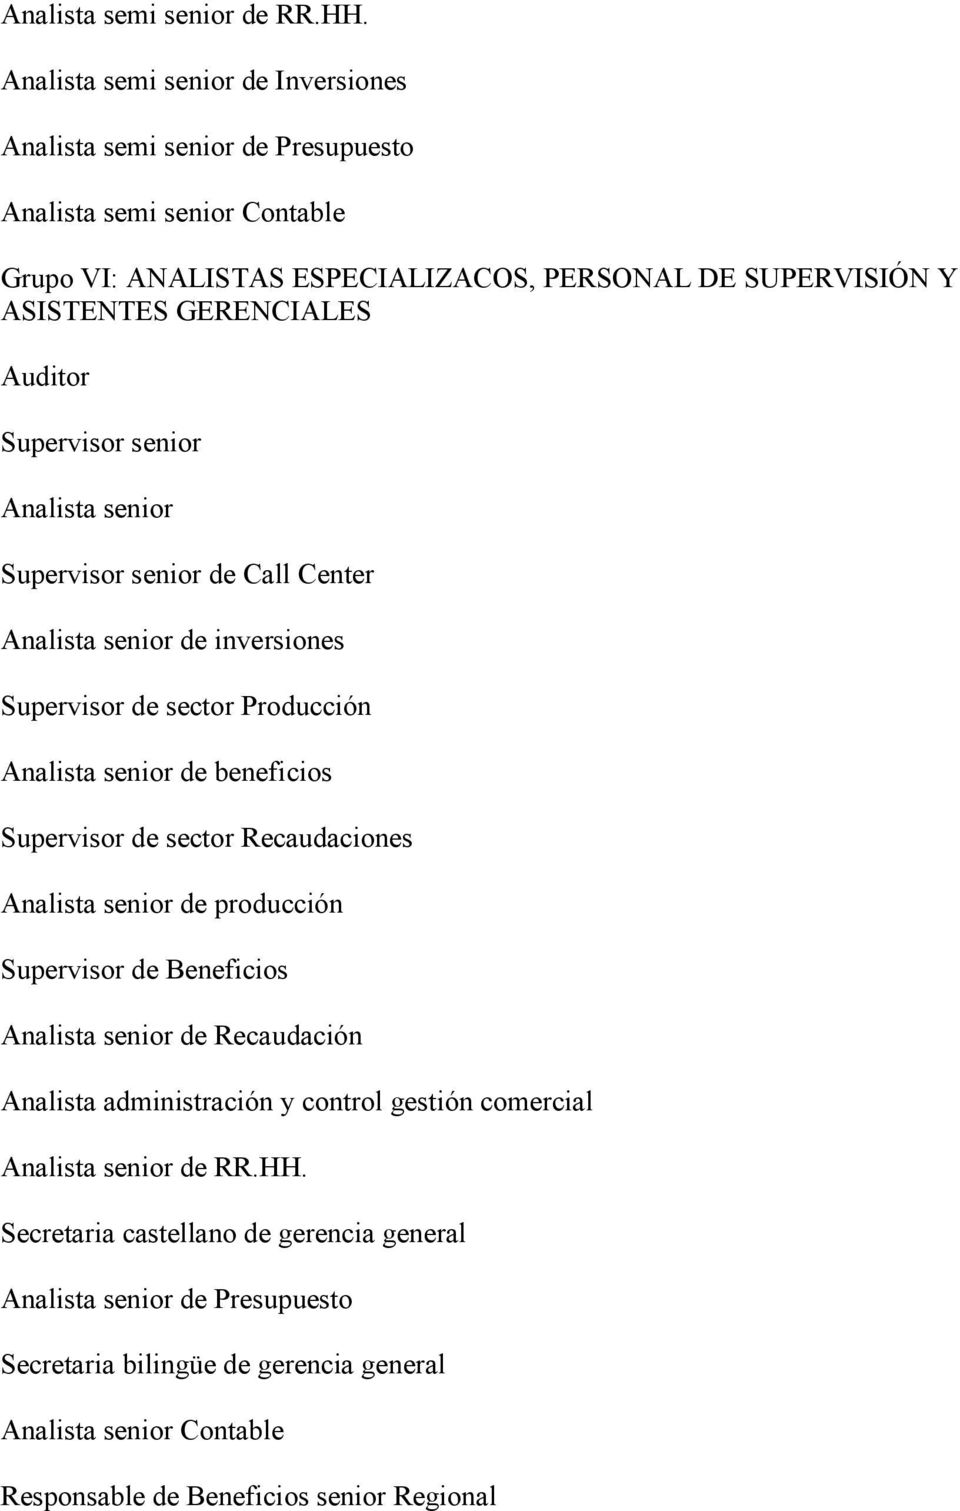 Auditor Supervisor senior Analista senior Supervisor senior de Call Center Analista senior de inversiones Supervisor de sector Producción Analista senior de beneficios Supervisor de sector